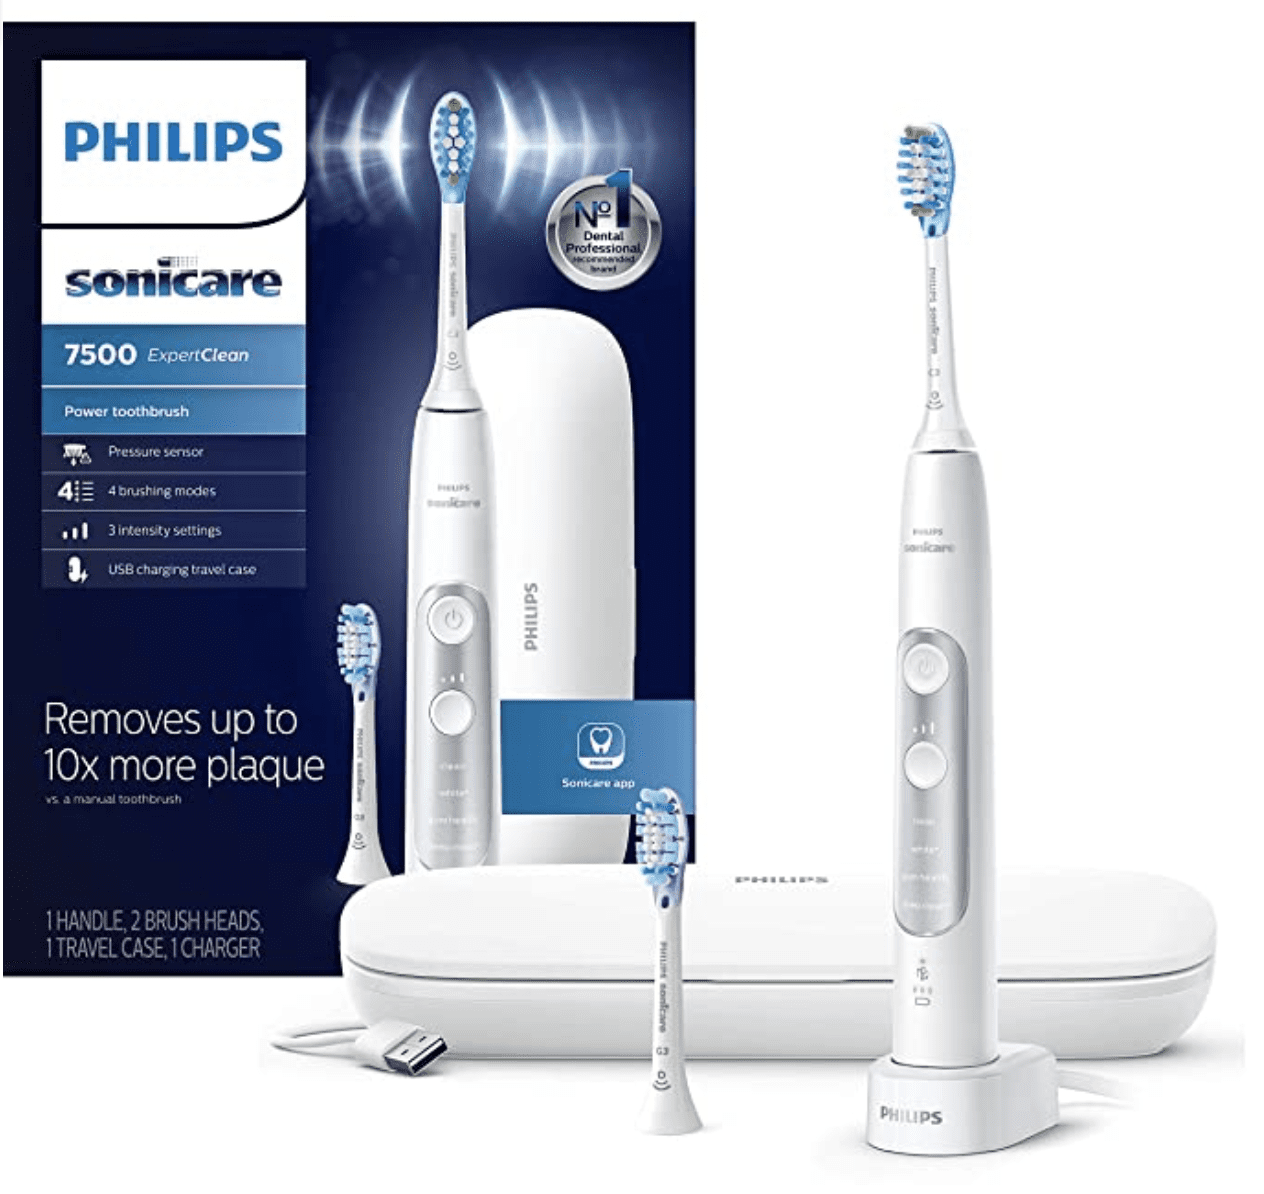 Philips Sonicare HX9690/05 Bluetooth Toothbrush for 9.99